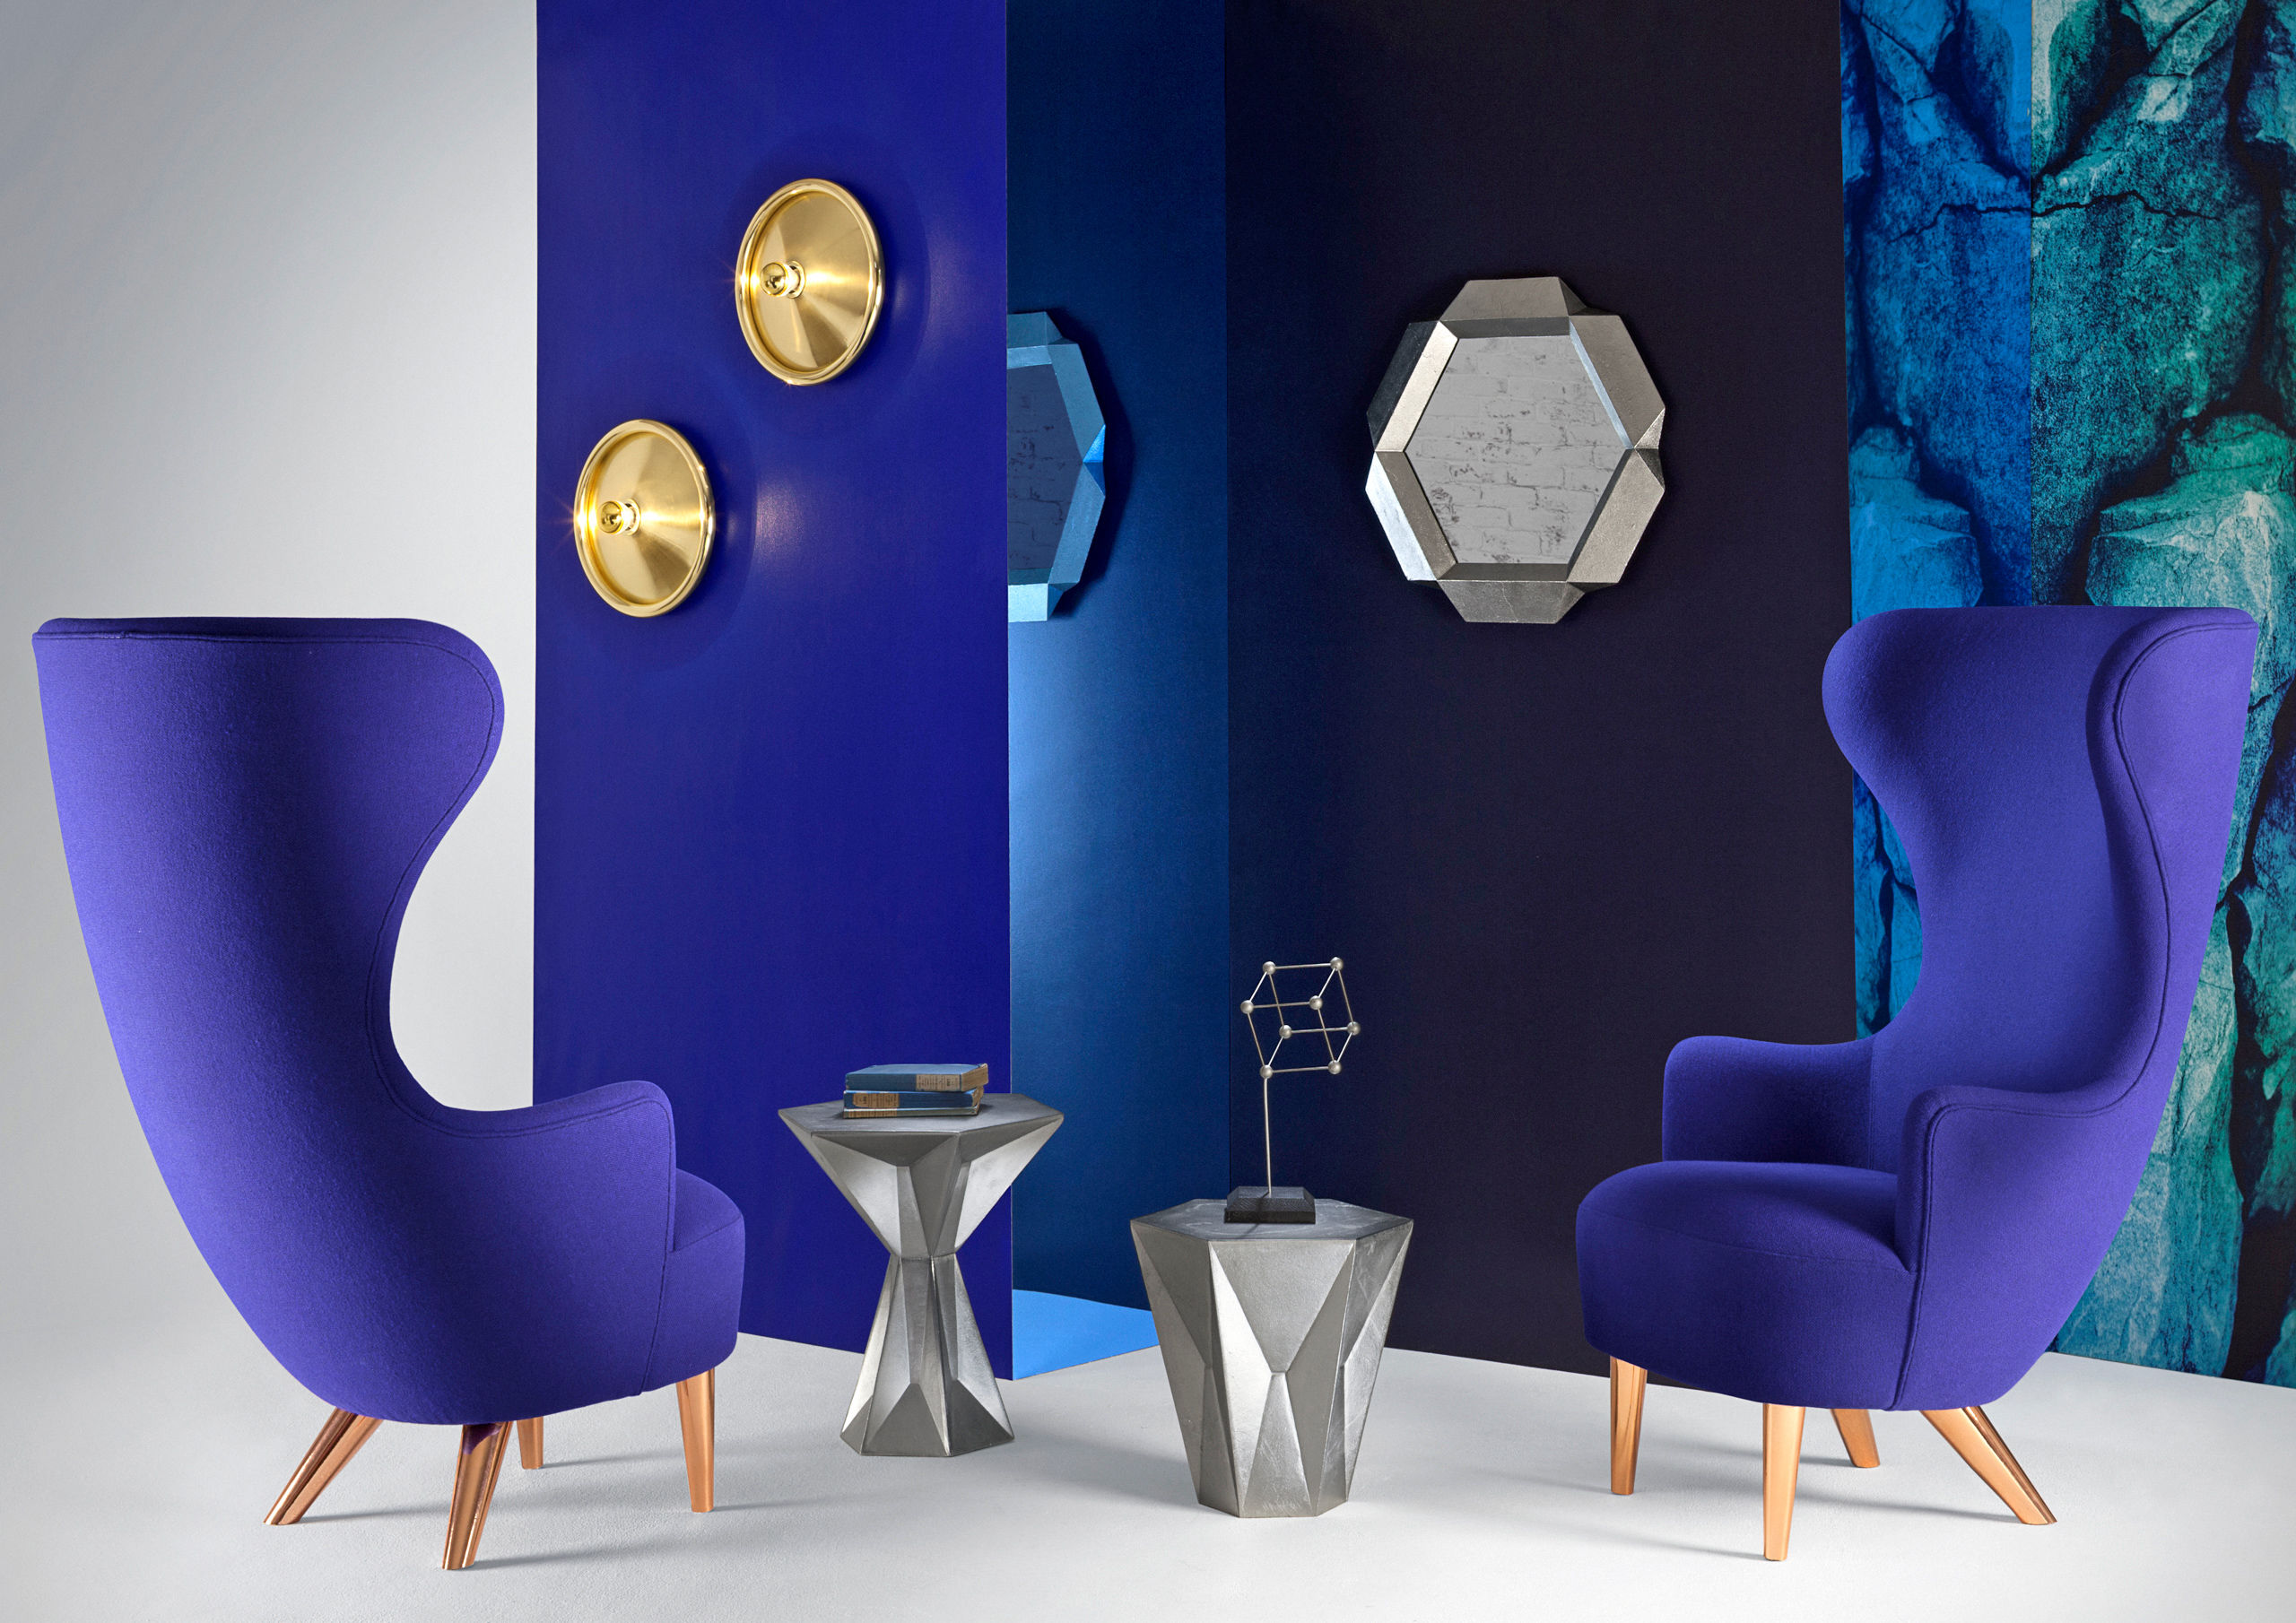 Panton Chairs Wingback Lounge Chair - Hivemodern.com